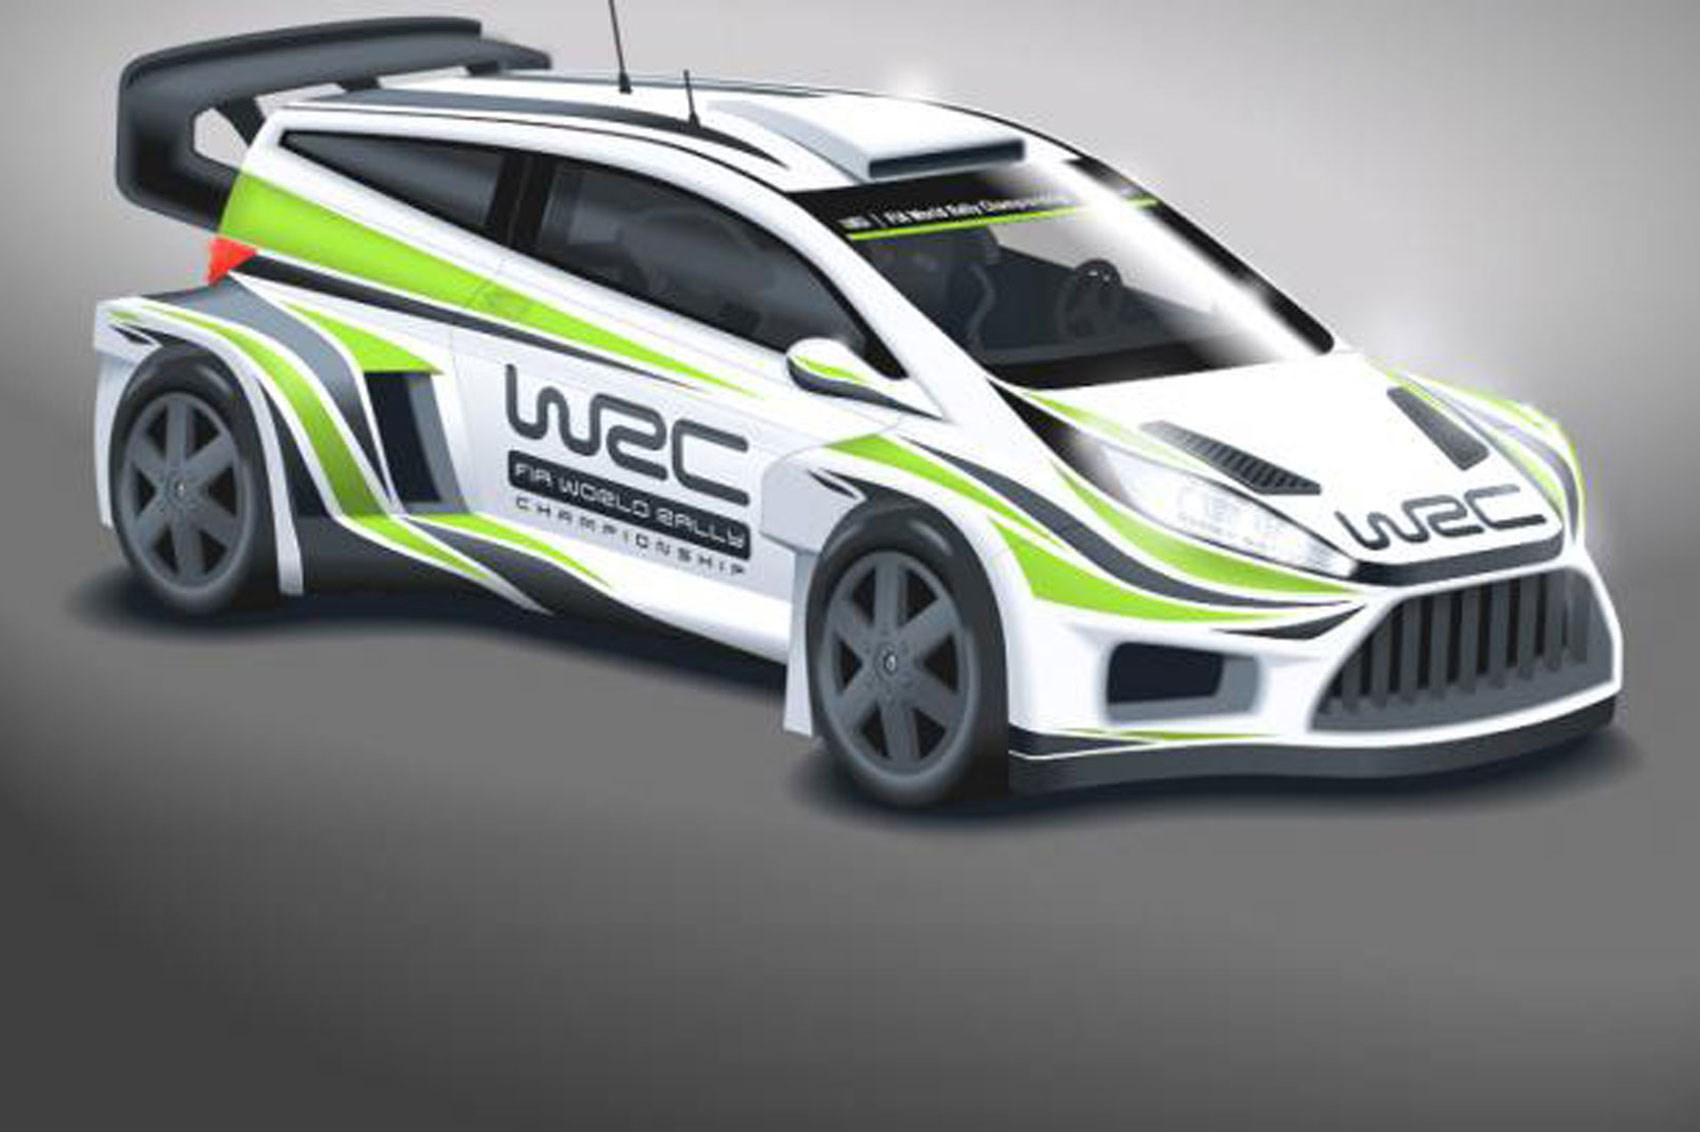 Ultrablogus  Seductive Wild New Look For Wrc Cars In  By Car Magazine With Hot Wrc Cars Will Get Wider Bodies Bigger Wings And More Power For  With Easy On The Eye Commercial Van Interiors San Diego Also Car Interior Curtains In Addition Aircraft Interior Show And How To Design Car Interior As Well As Tank Interior Photos Additionally Interior Specifications From Carmagazinecouk With Ultrablogus  Hot Wild New Look For Wrc Cars In  By Car Magazine With Easy On The Eye Wrc Cars Will Get Wider Bodies Bigger Wings And More Power For  And Seductive Commercial Van Interiors San Diego Also Car Interior Curtains In Addition Aircraft Interior Show From Carmagazinecouk